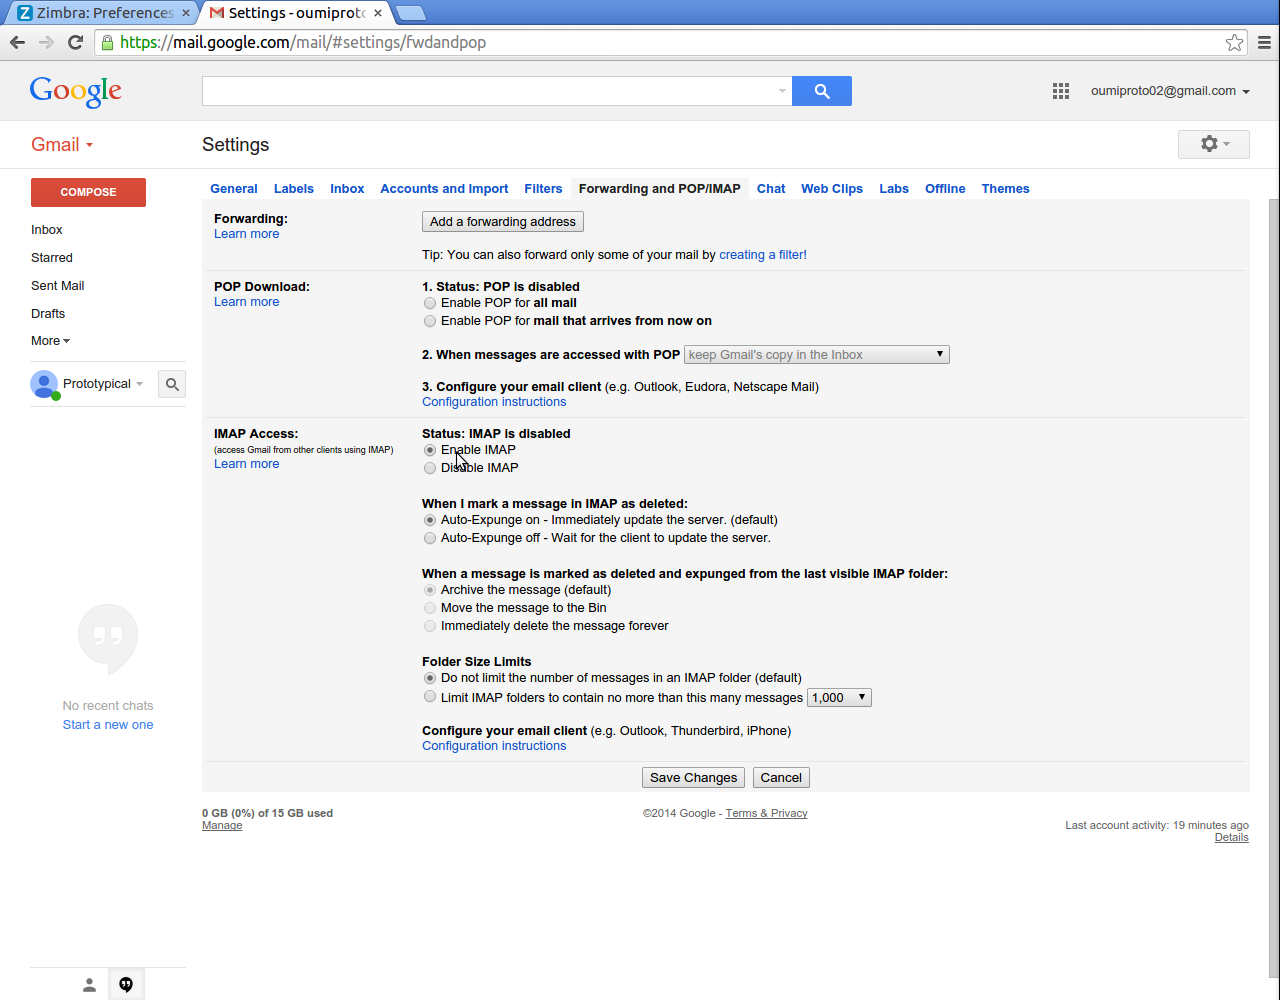 how to download mail from gmail account